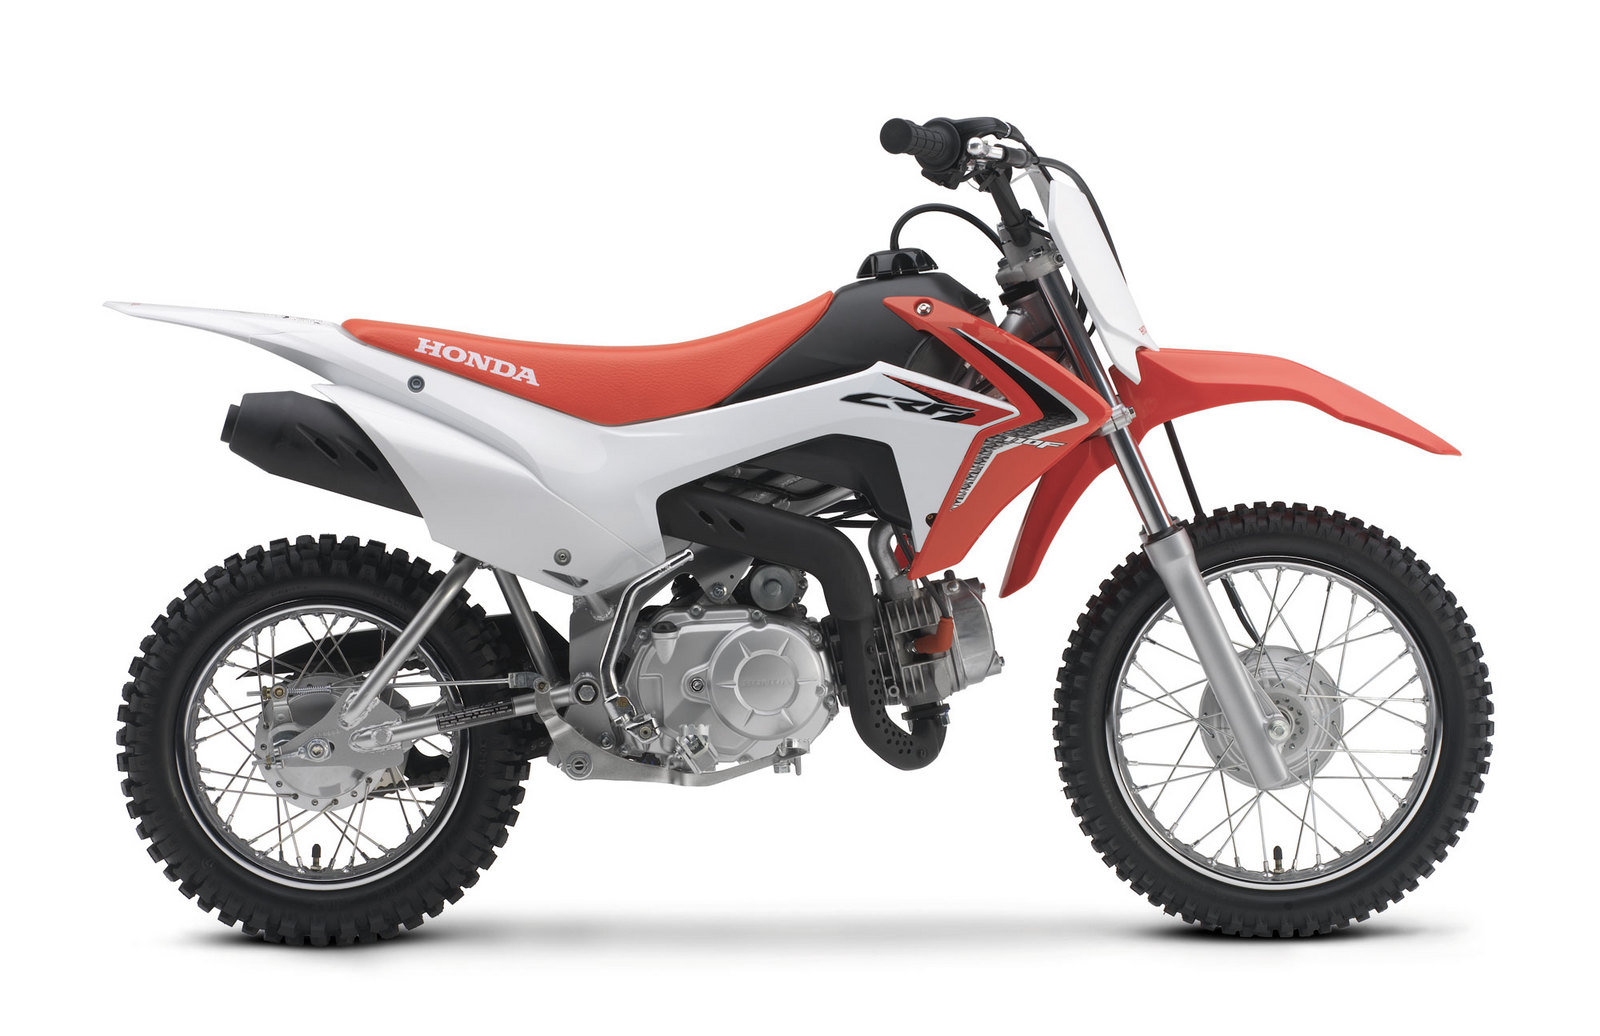 2013 honda crf 110f review top speed for Honda crf110f top speed